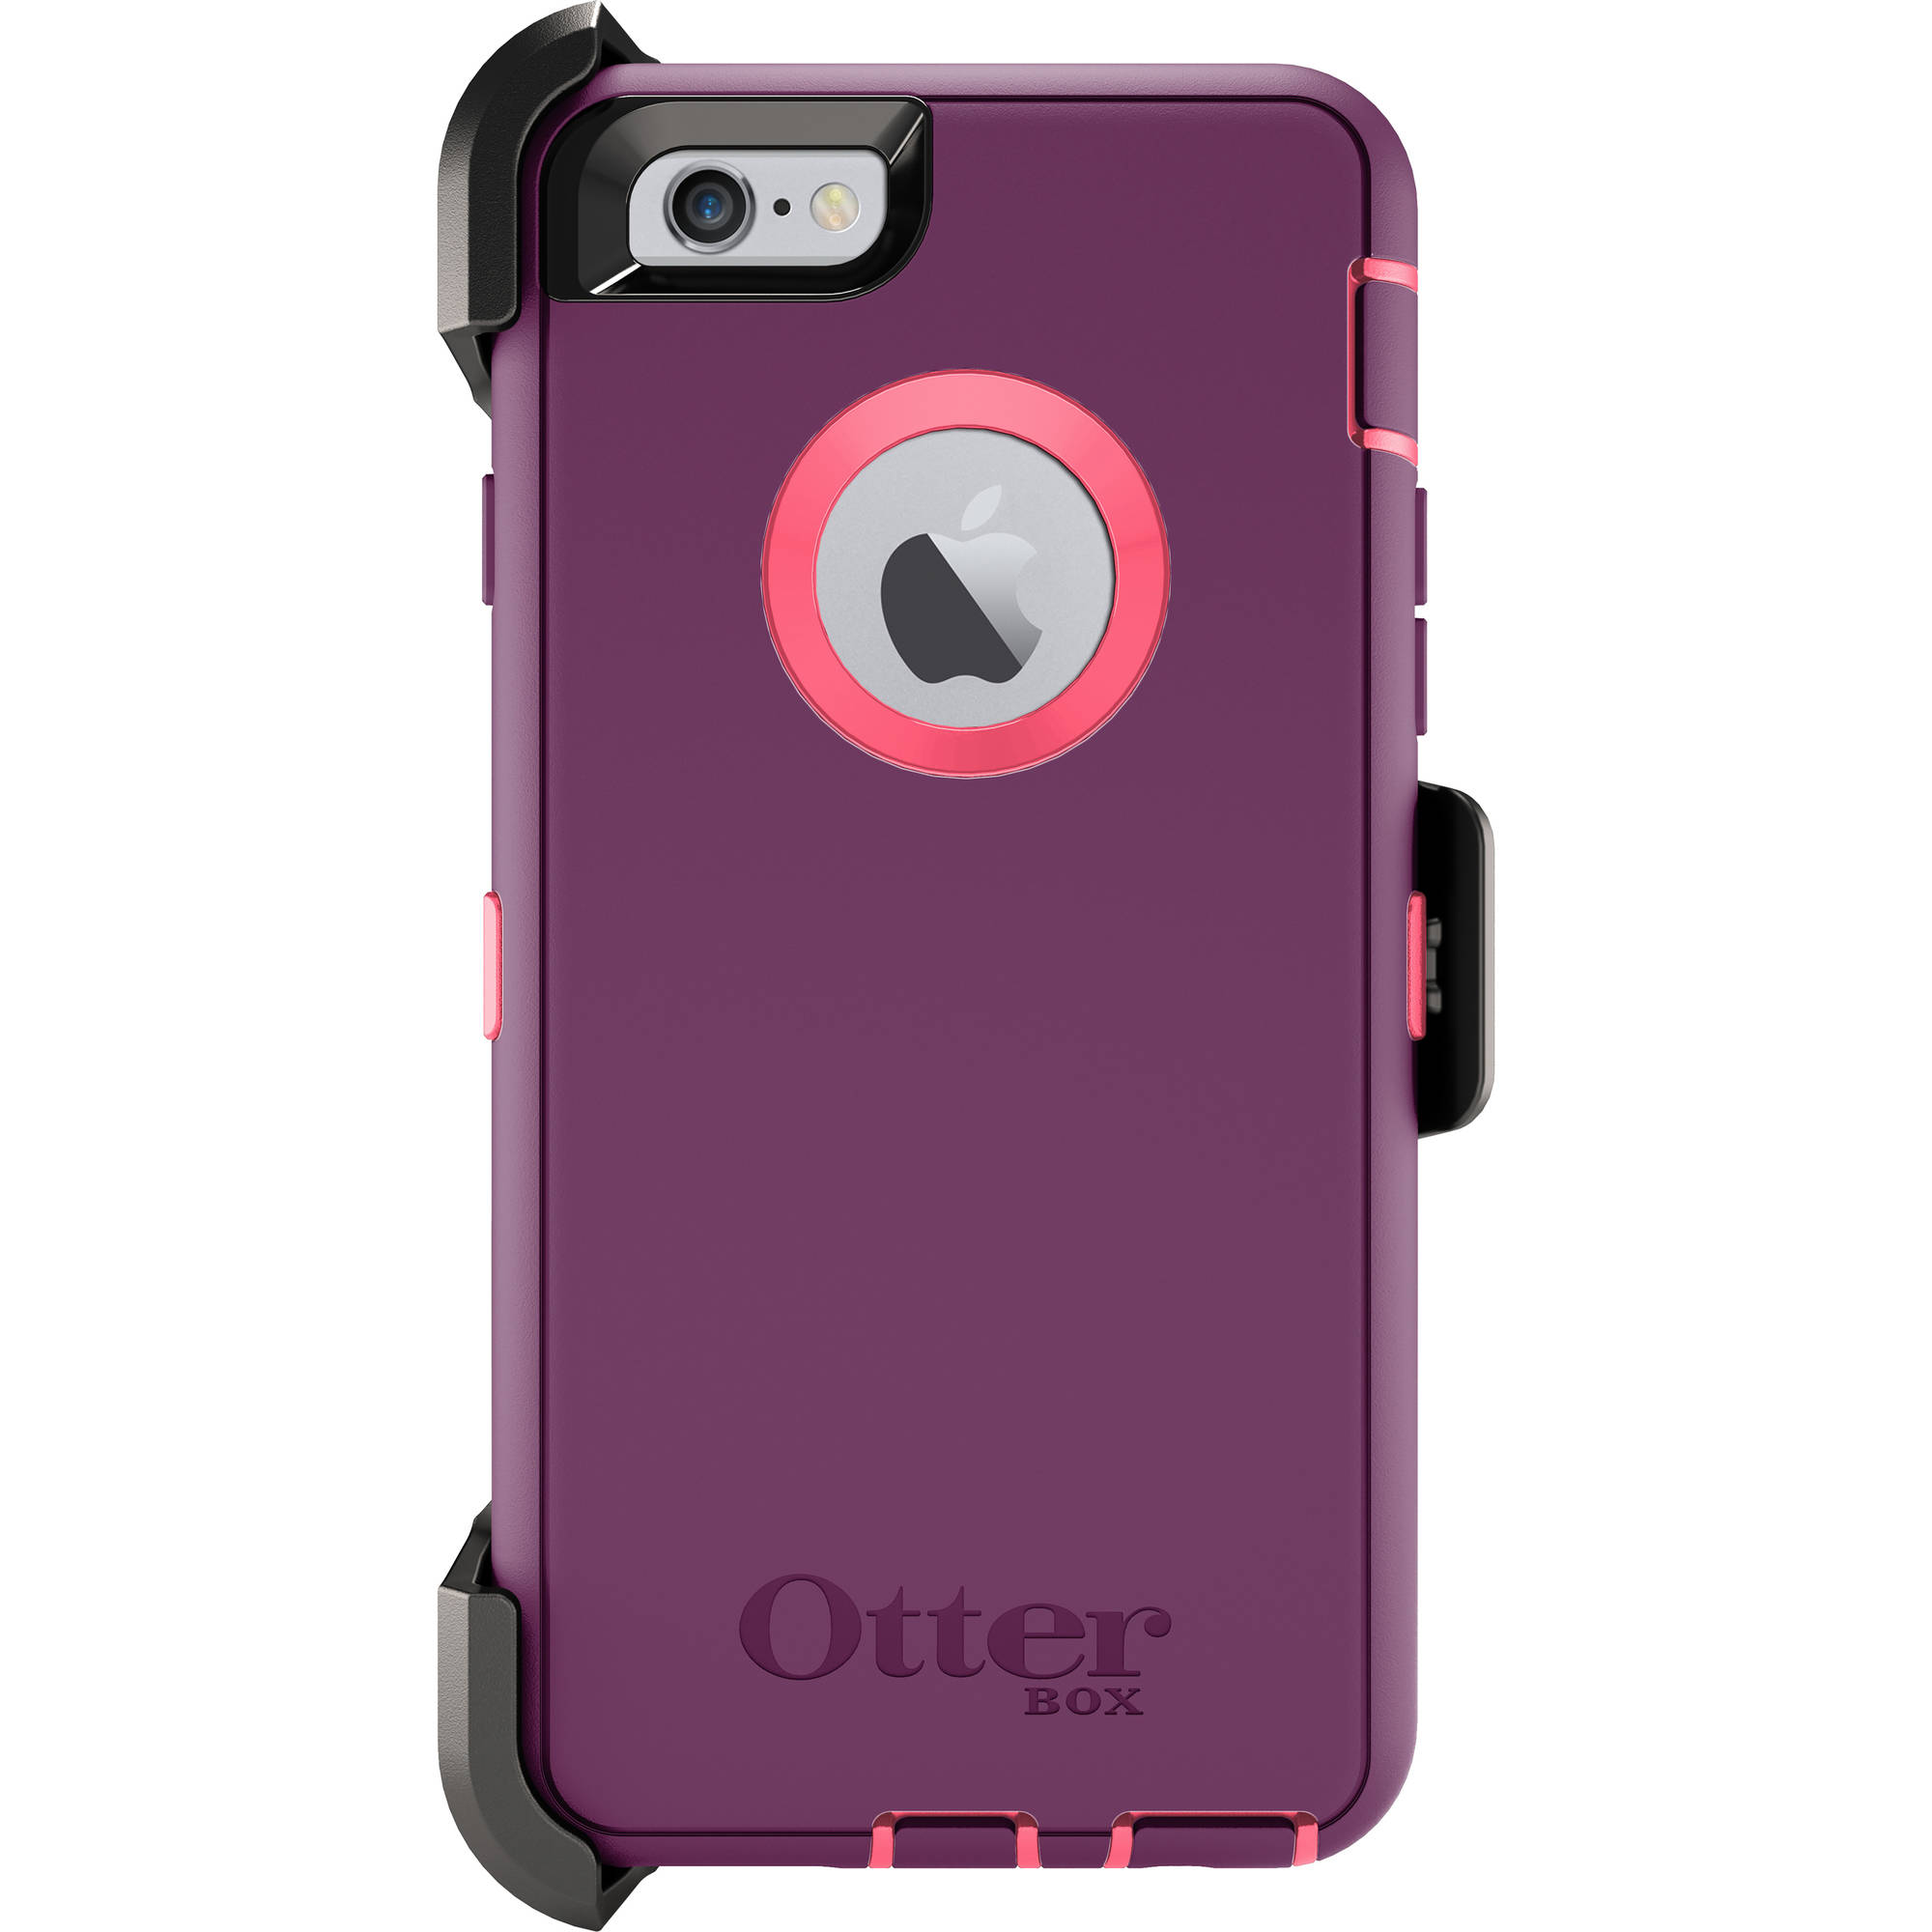 iPhone 6 Otterbox defender case for apple iphone 6, crushed damson ...